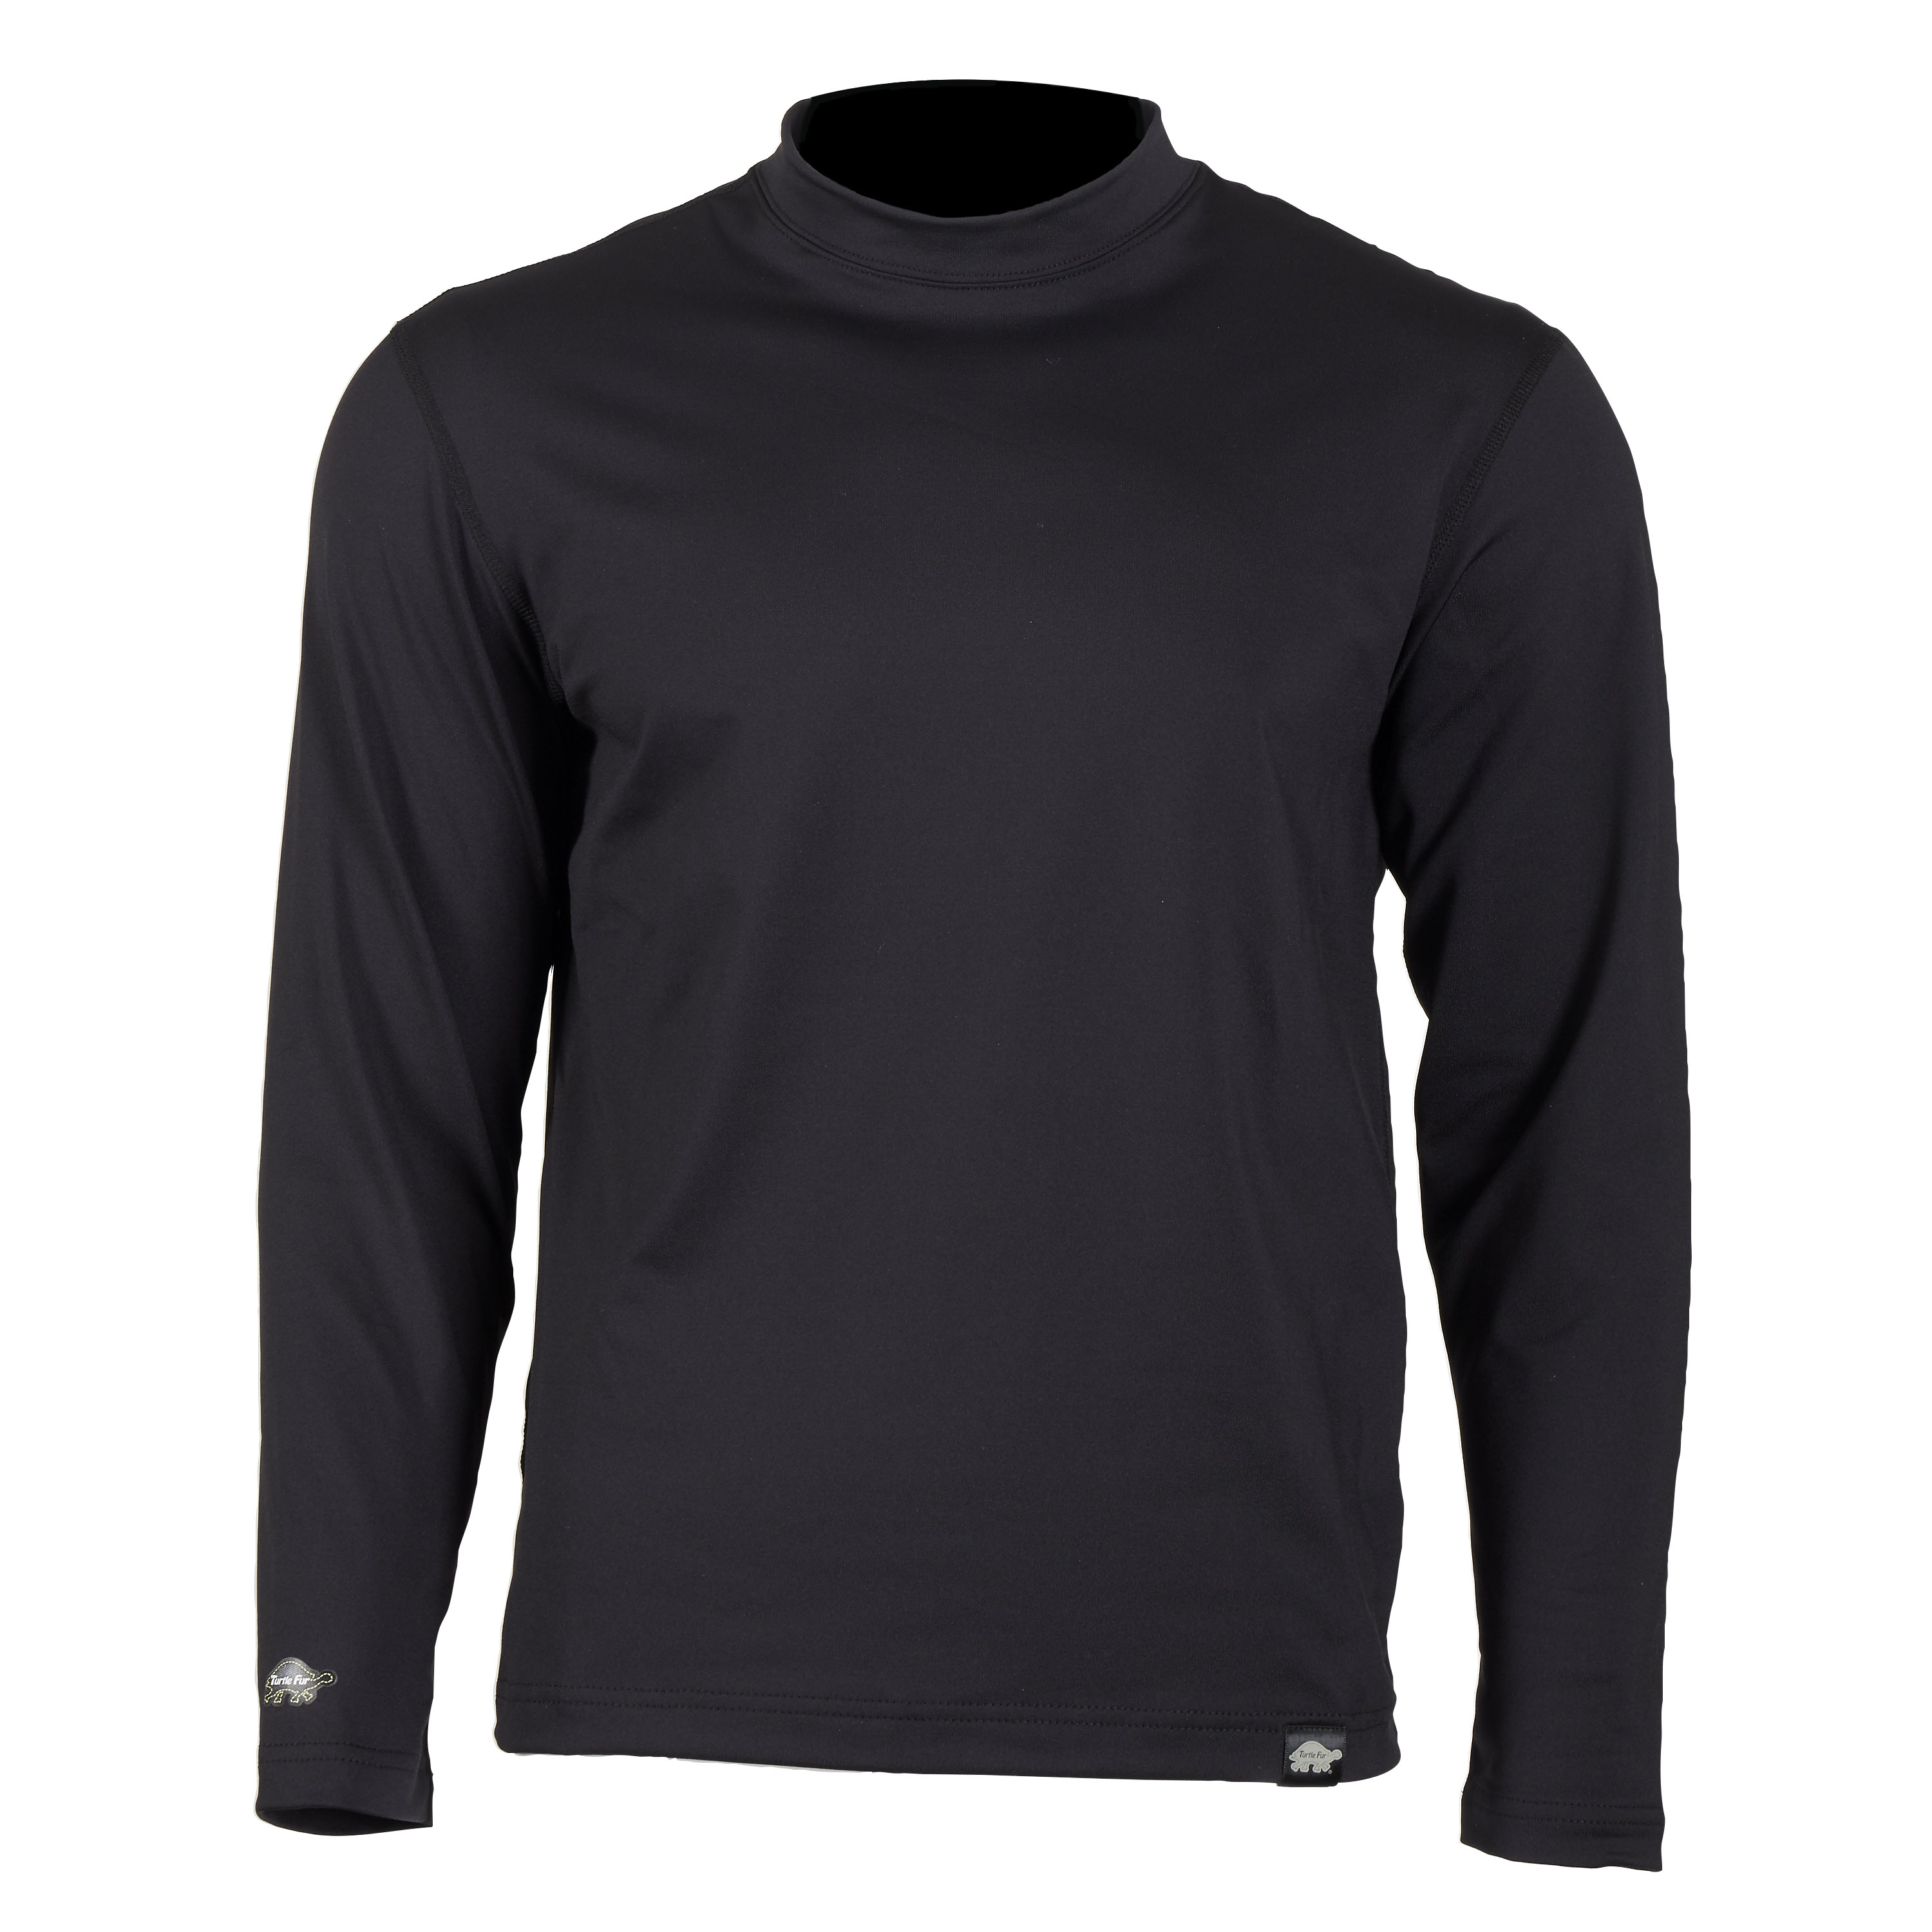 Turtle Fur Men's Alta High Energy Base Layer Long Sleeve Crew Neck Top by Turtle Fur